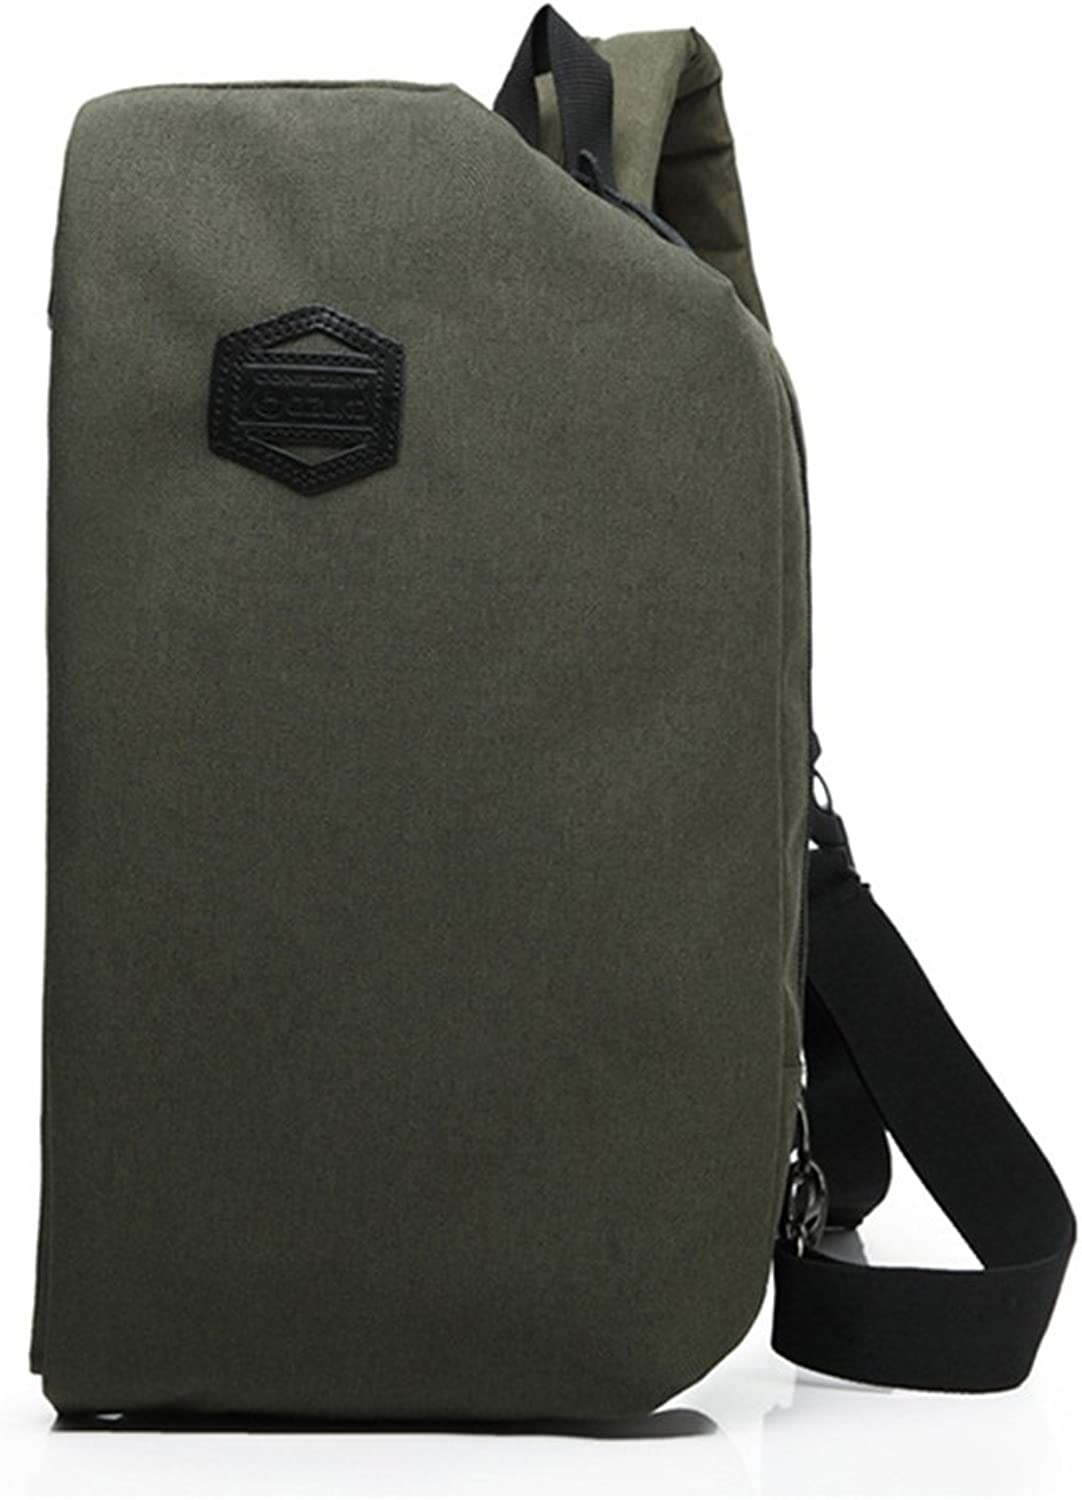 Sling Bag, Crossbody Canvas Chest Bag for Men WomenAnti-Theft Daypack Or Sport Outdoor Gym Travel Hiking